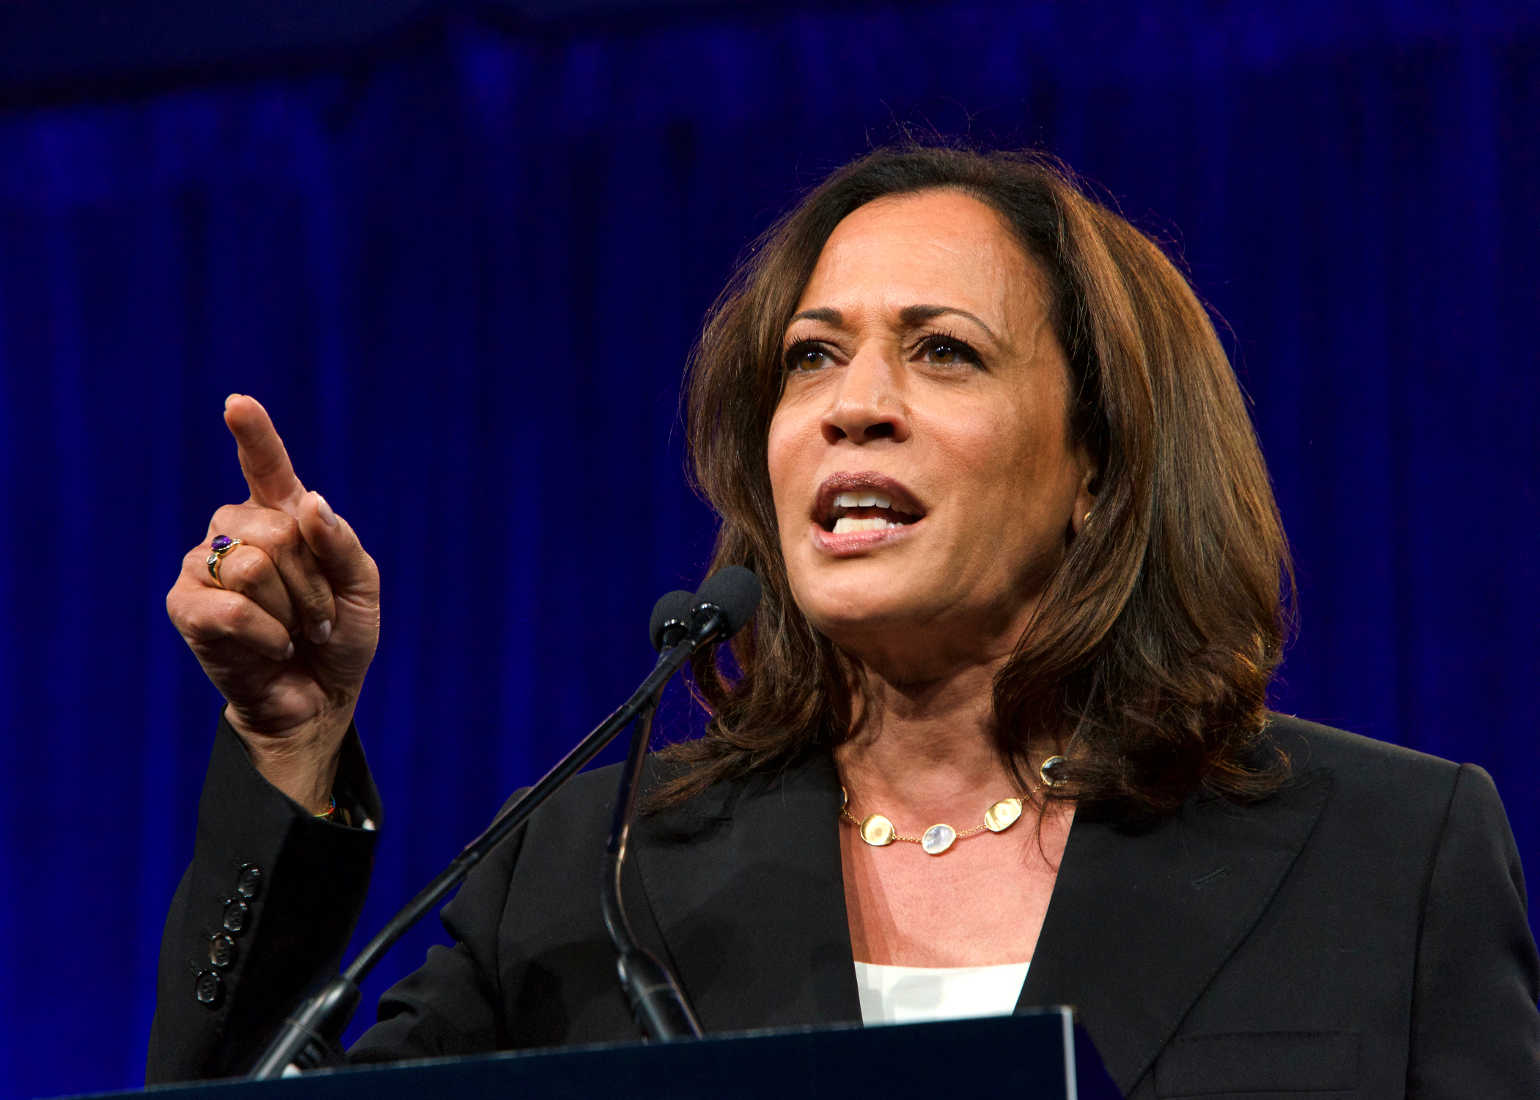 Reminder: Kamala Harris Said She Would 'Take Executive Action' on Gun Control, Ban AR-15s